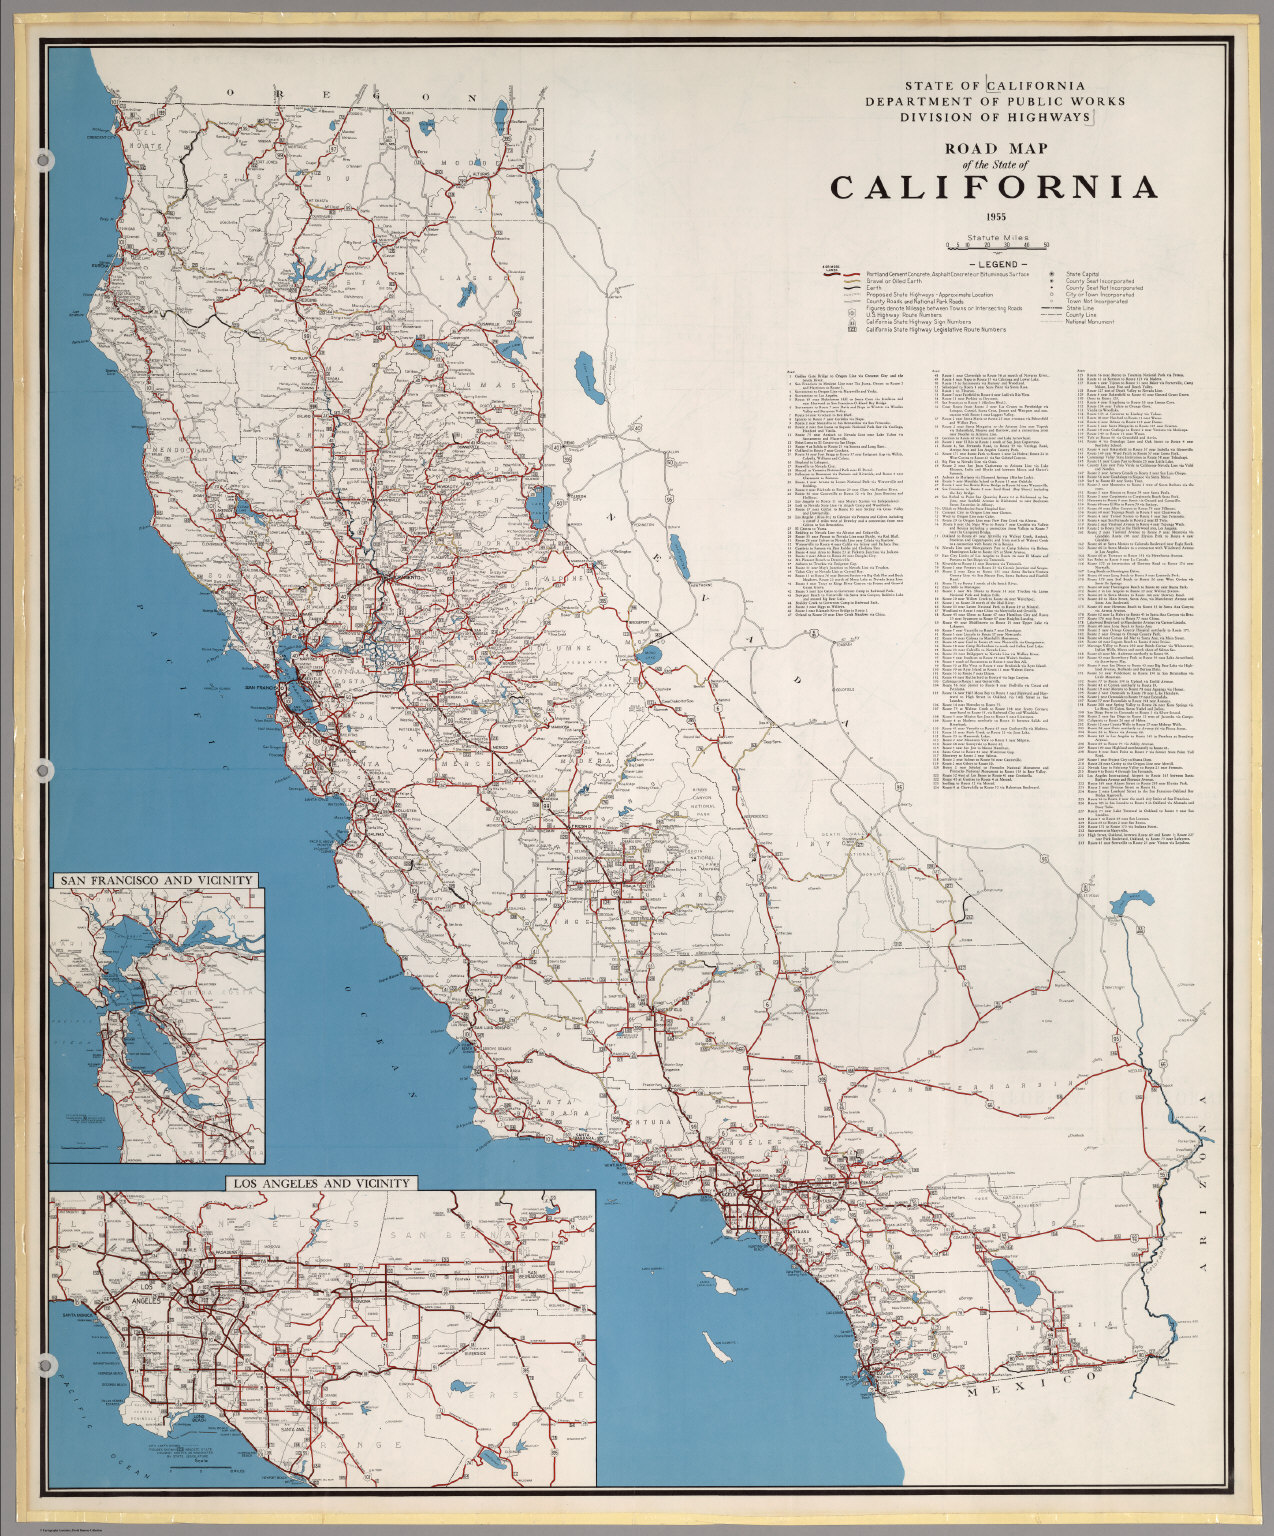 Road Map of the State of California, 1955.